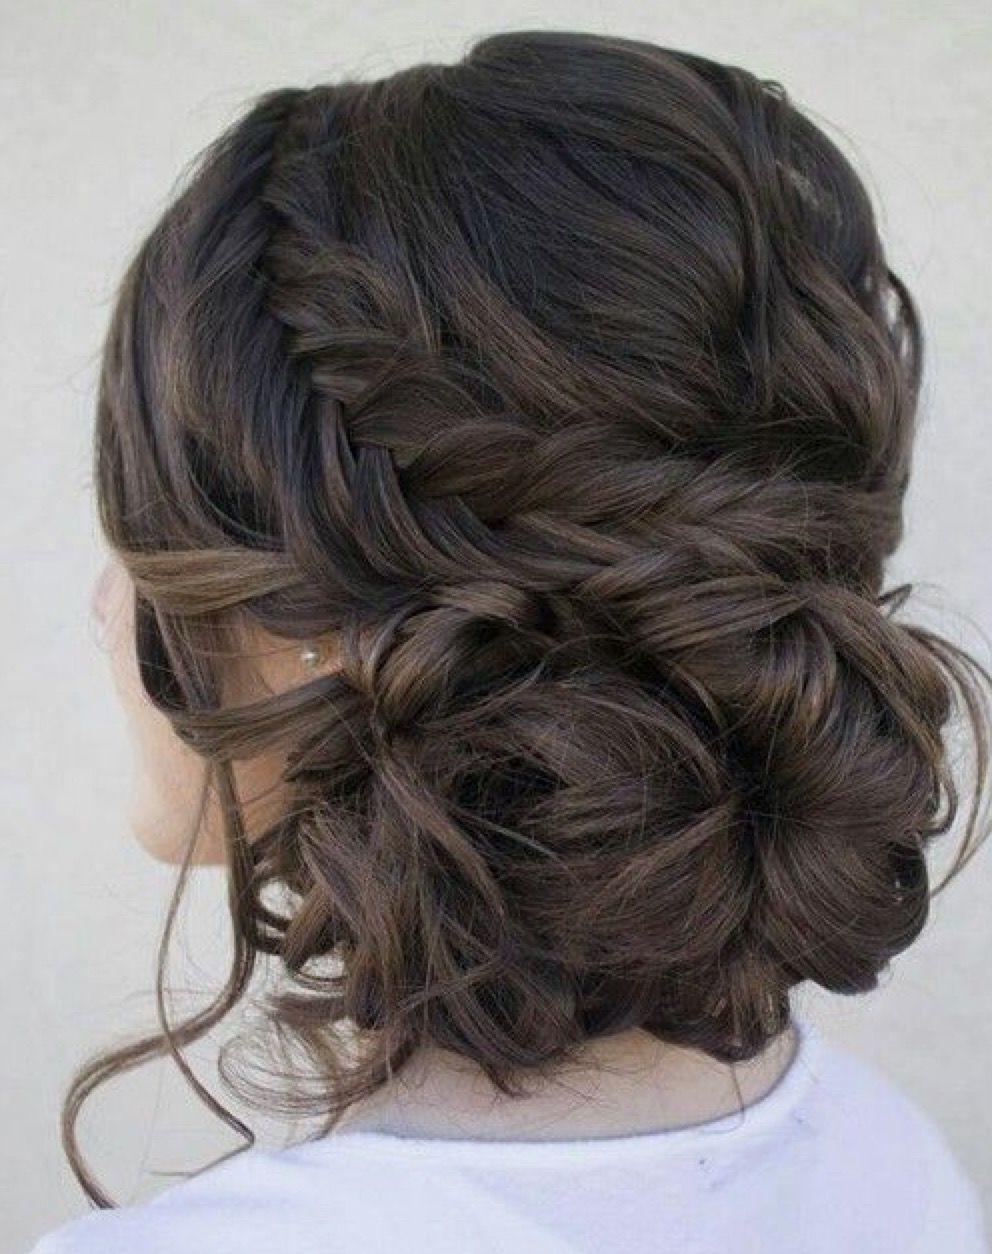 Pin by laura hernández on updo pinterest updo